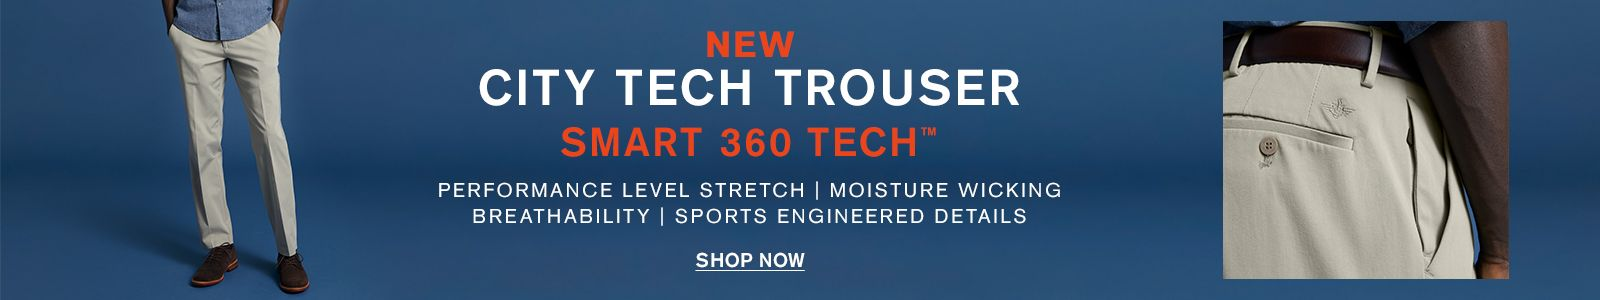 New, City Tech Trouser, Smart 360 Tech, Performance Level Stretch | Moisture Wicking Breathability | Sports Engineered Details